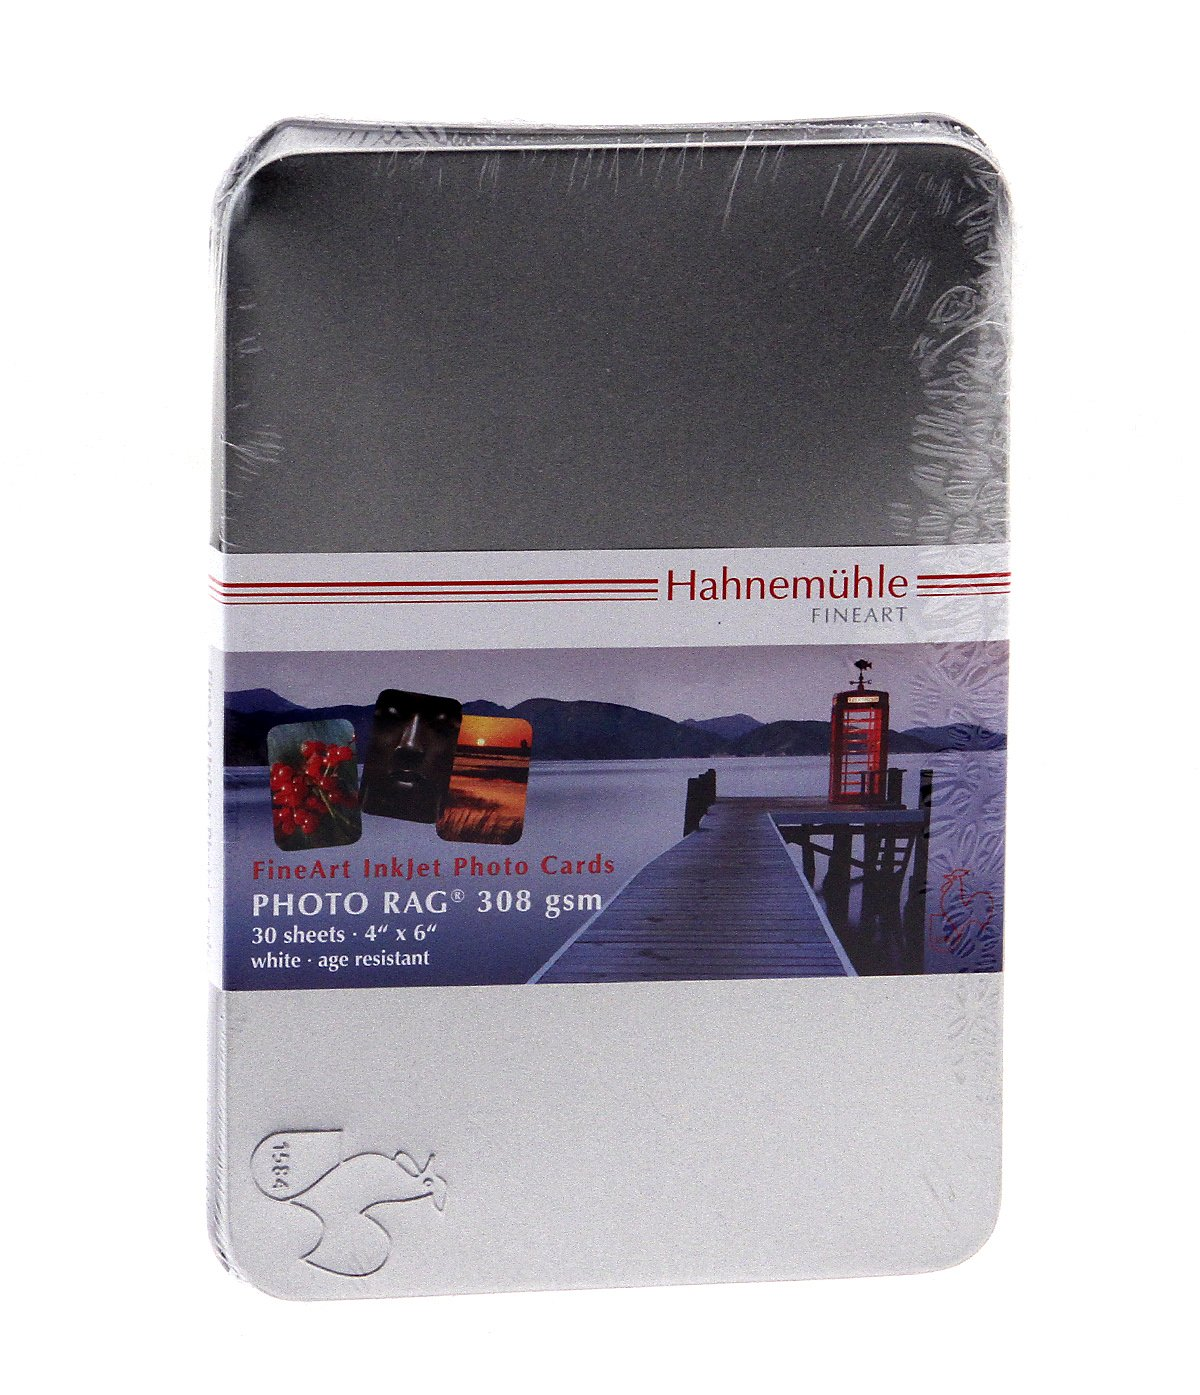 "Hahnemuhle FineArt Photo Rag 308, Bright White Matte Inkjet Photo Cards, 308gsm, 18.9mil, 4x6"", 30 Sheets in a Tin Box."